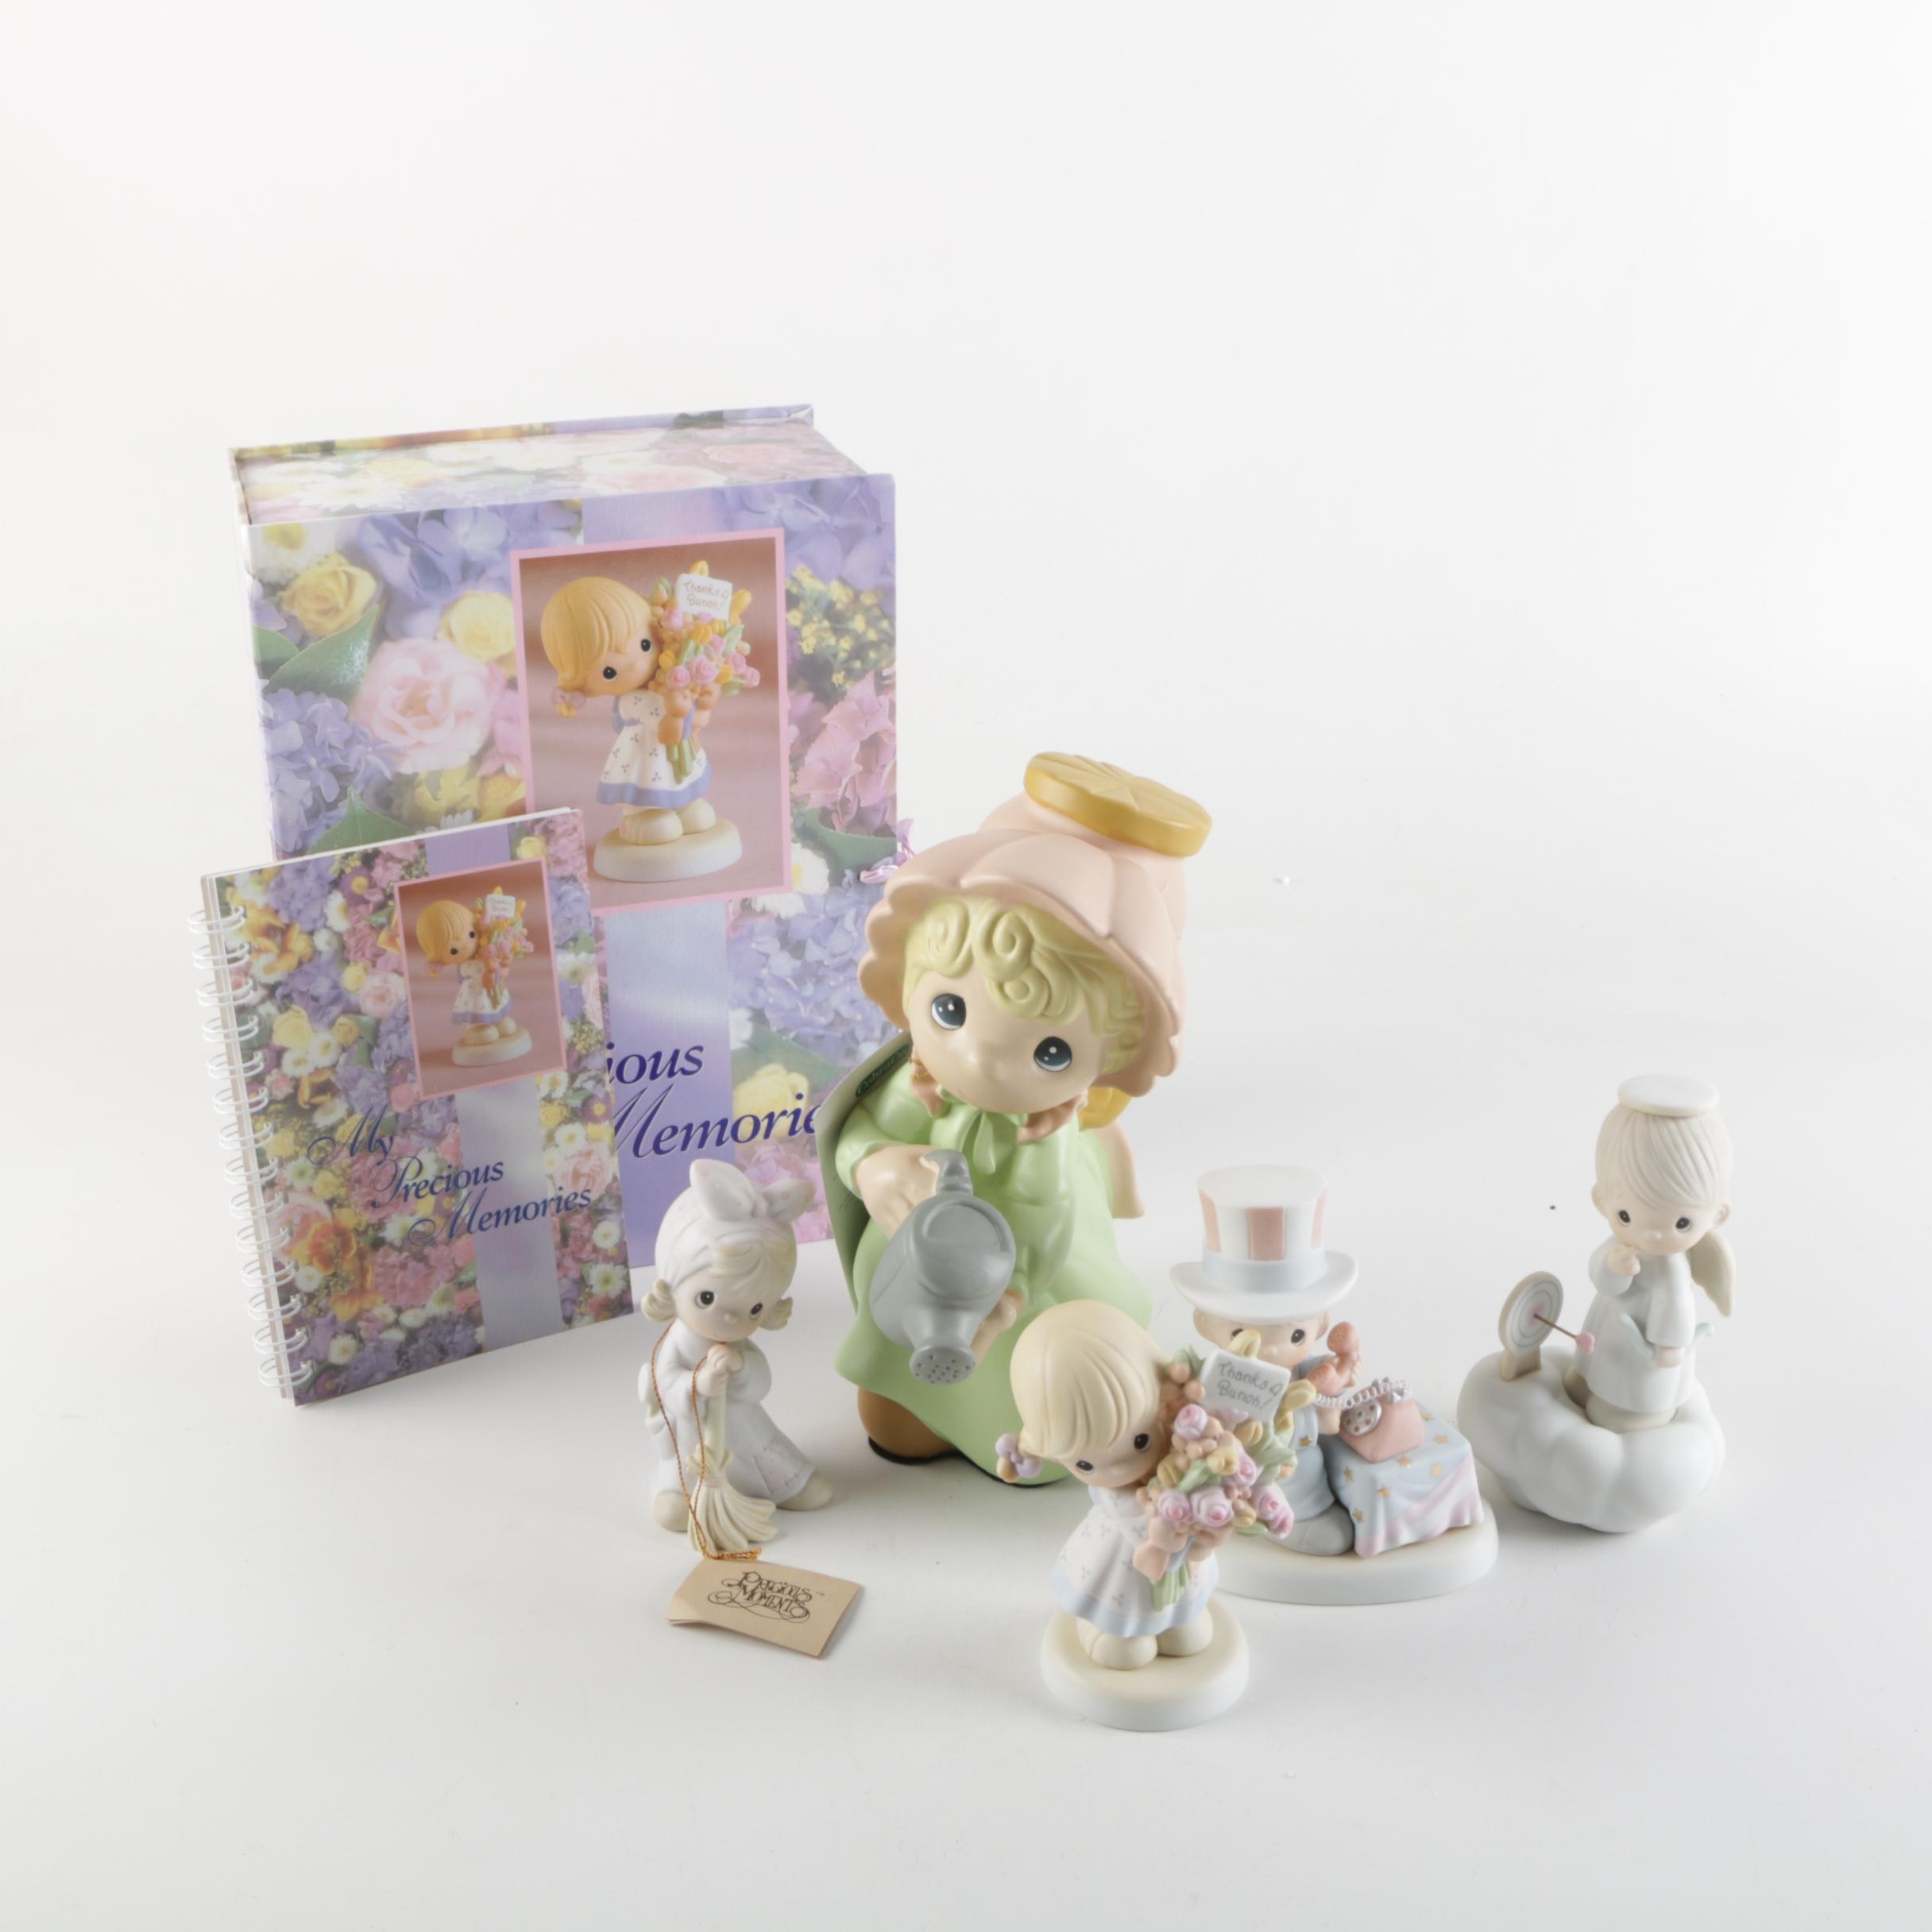 Precious Moments Figurines And Photo Journal